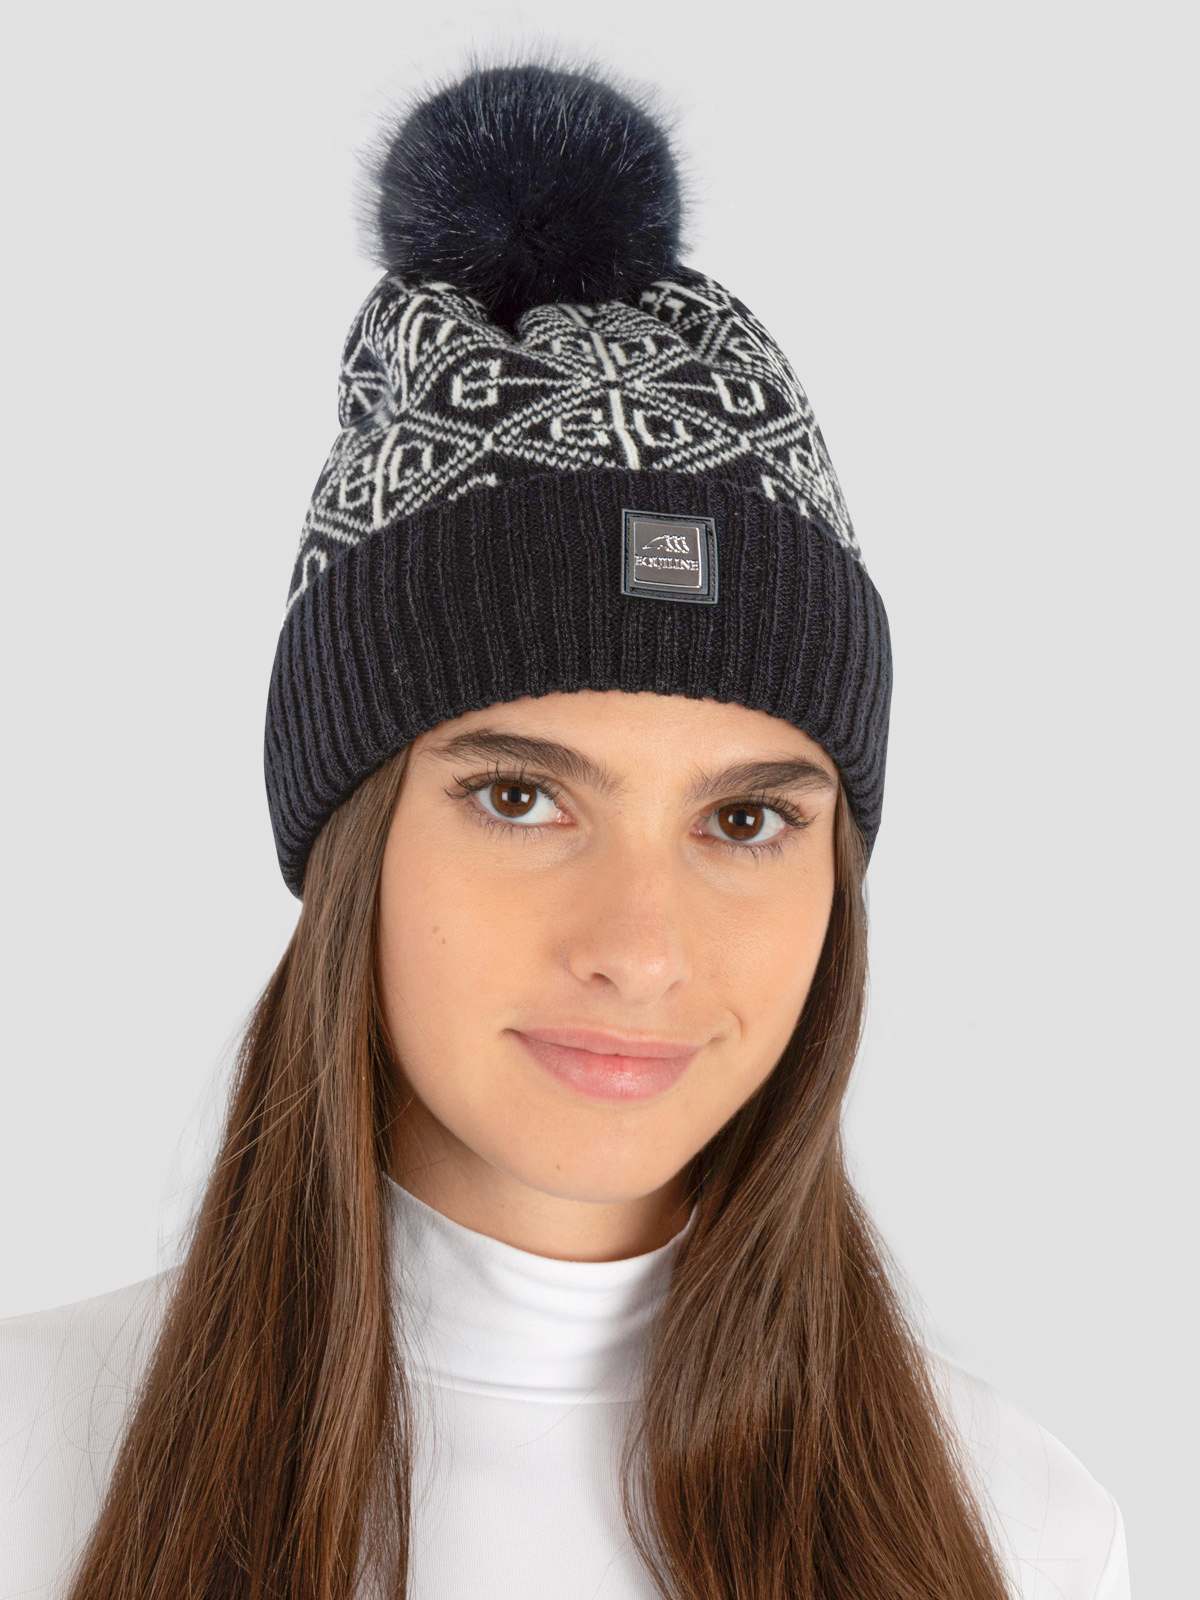 EDY KNIT POMPOM HAT WITH ALL OVER LOGO 2